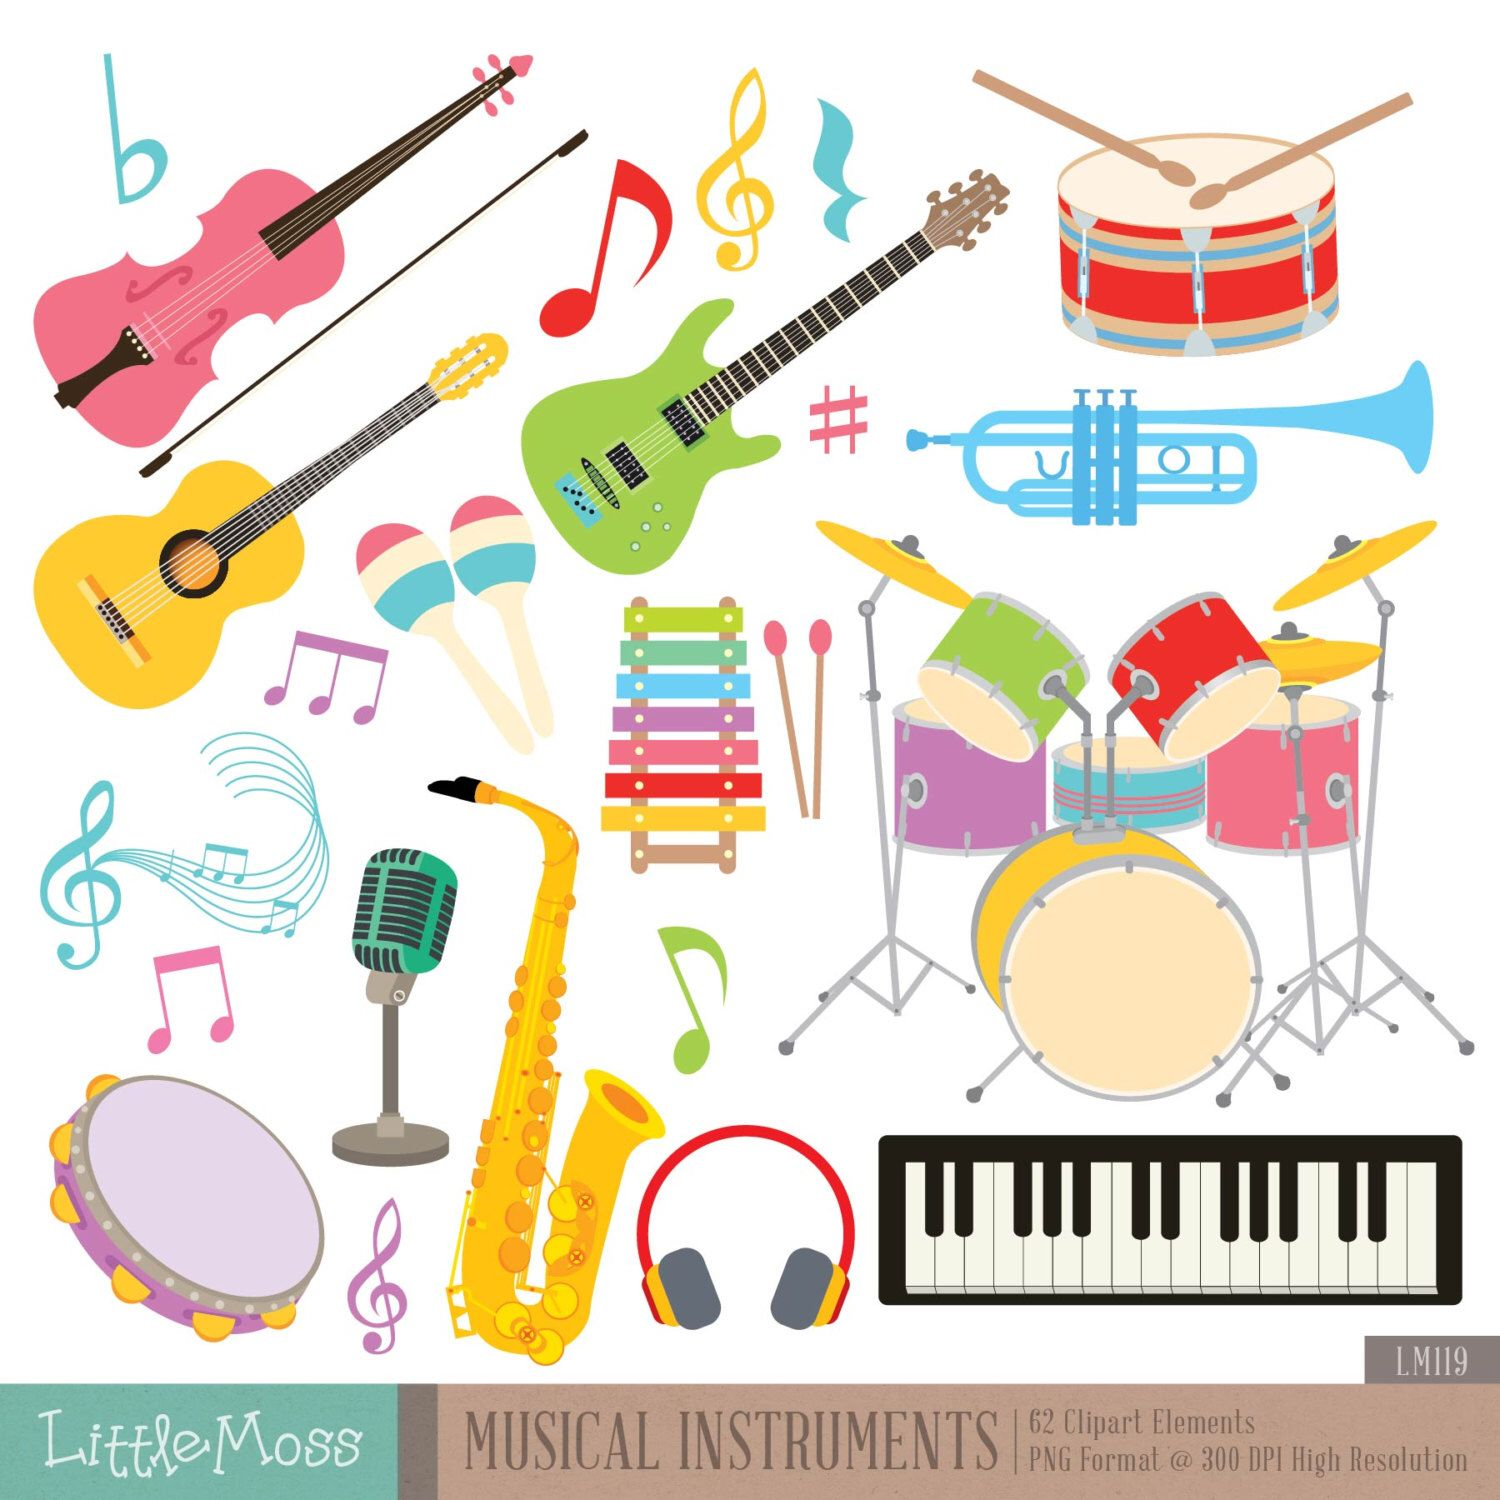 Drum clipart music thing. Musical instruments digital guitar